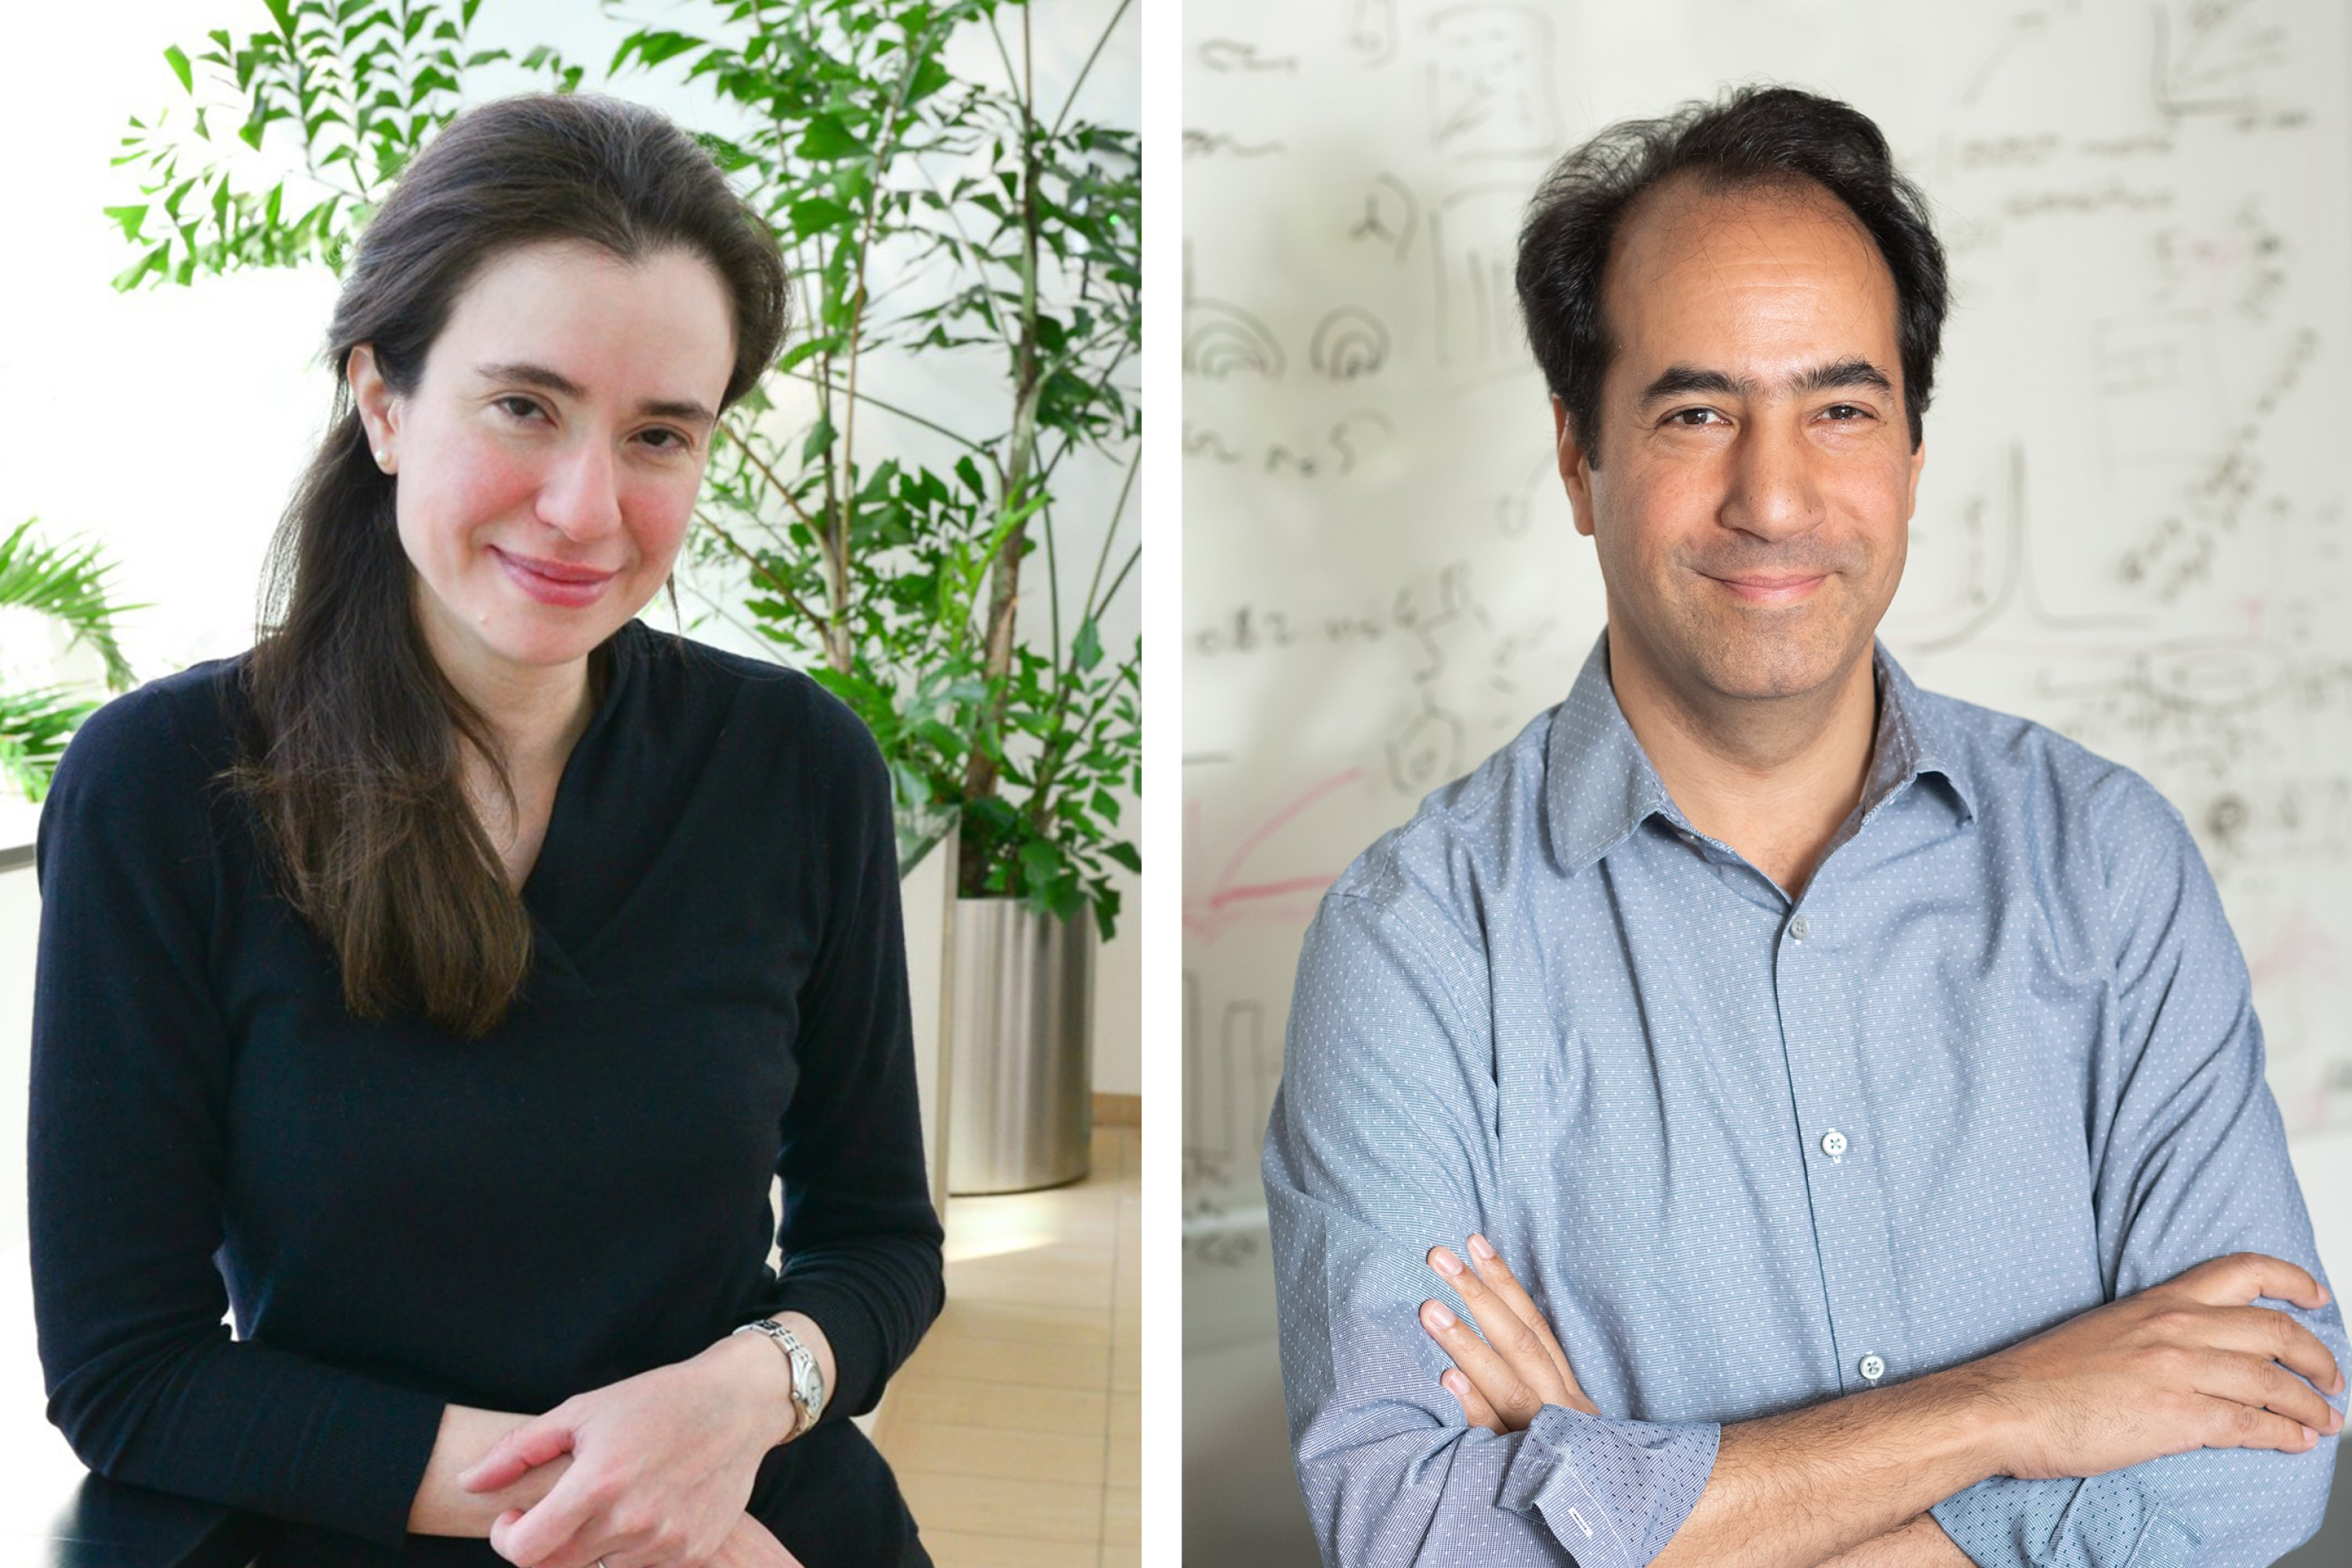 Scientists seek knowledge of Parkinson's, addiction, tracing gene expression in the brain |  MIT News